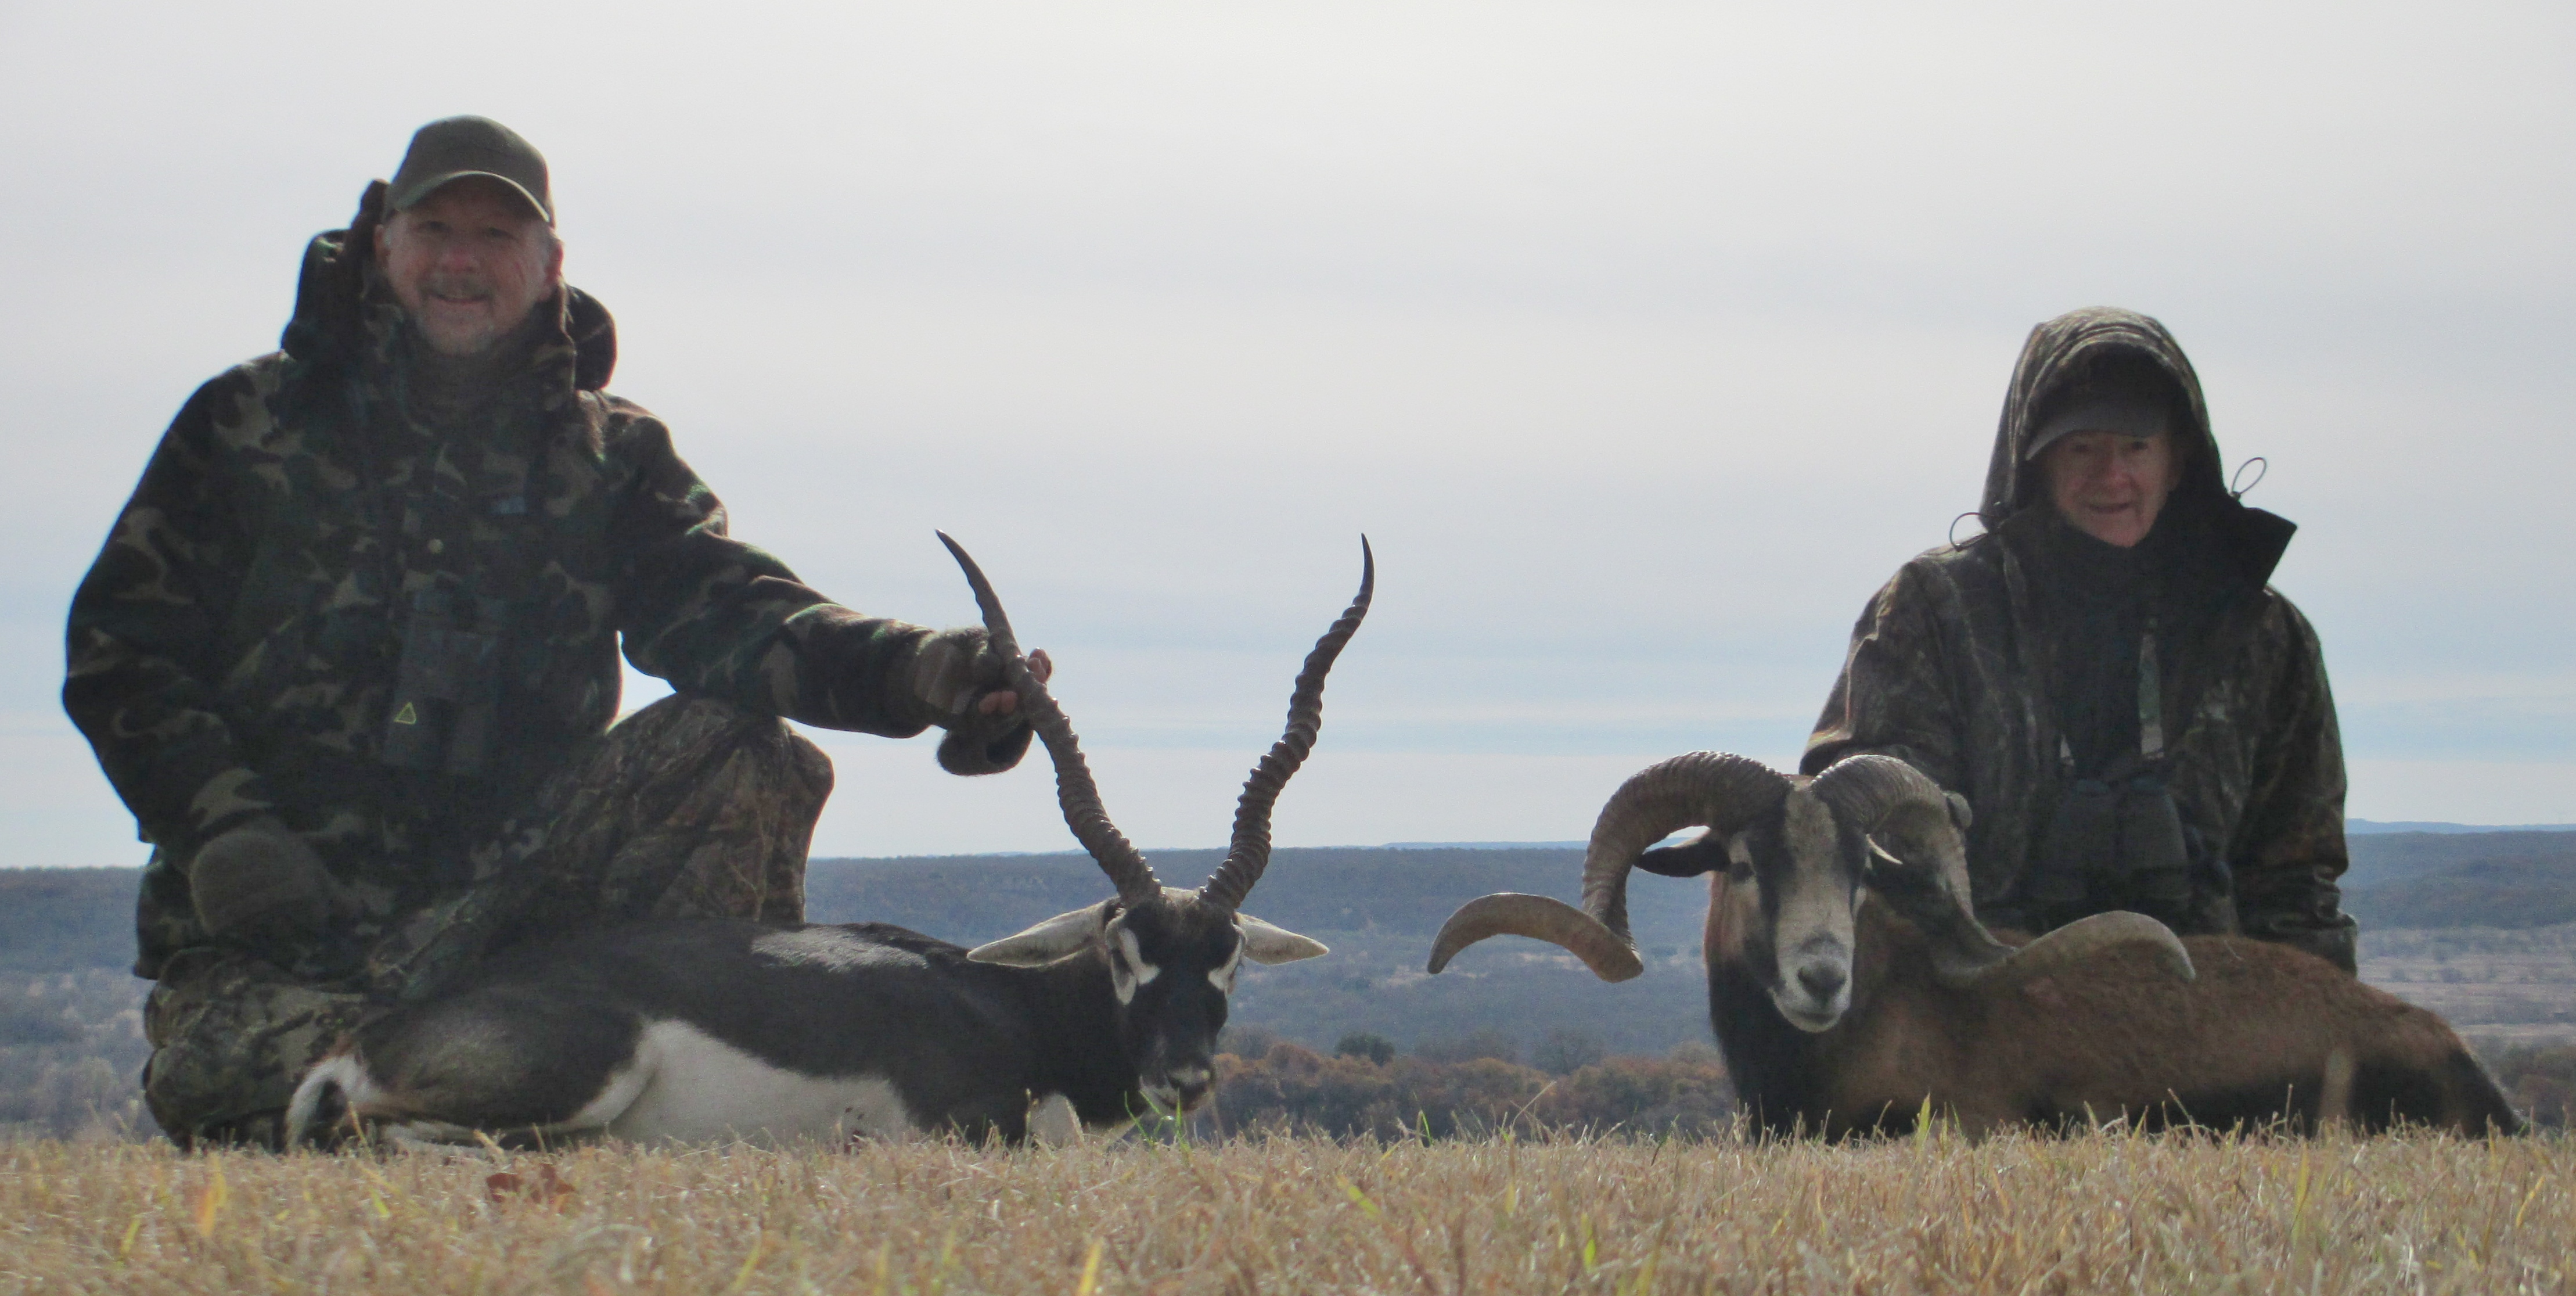 Blackbuck Antelope and Mouflon